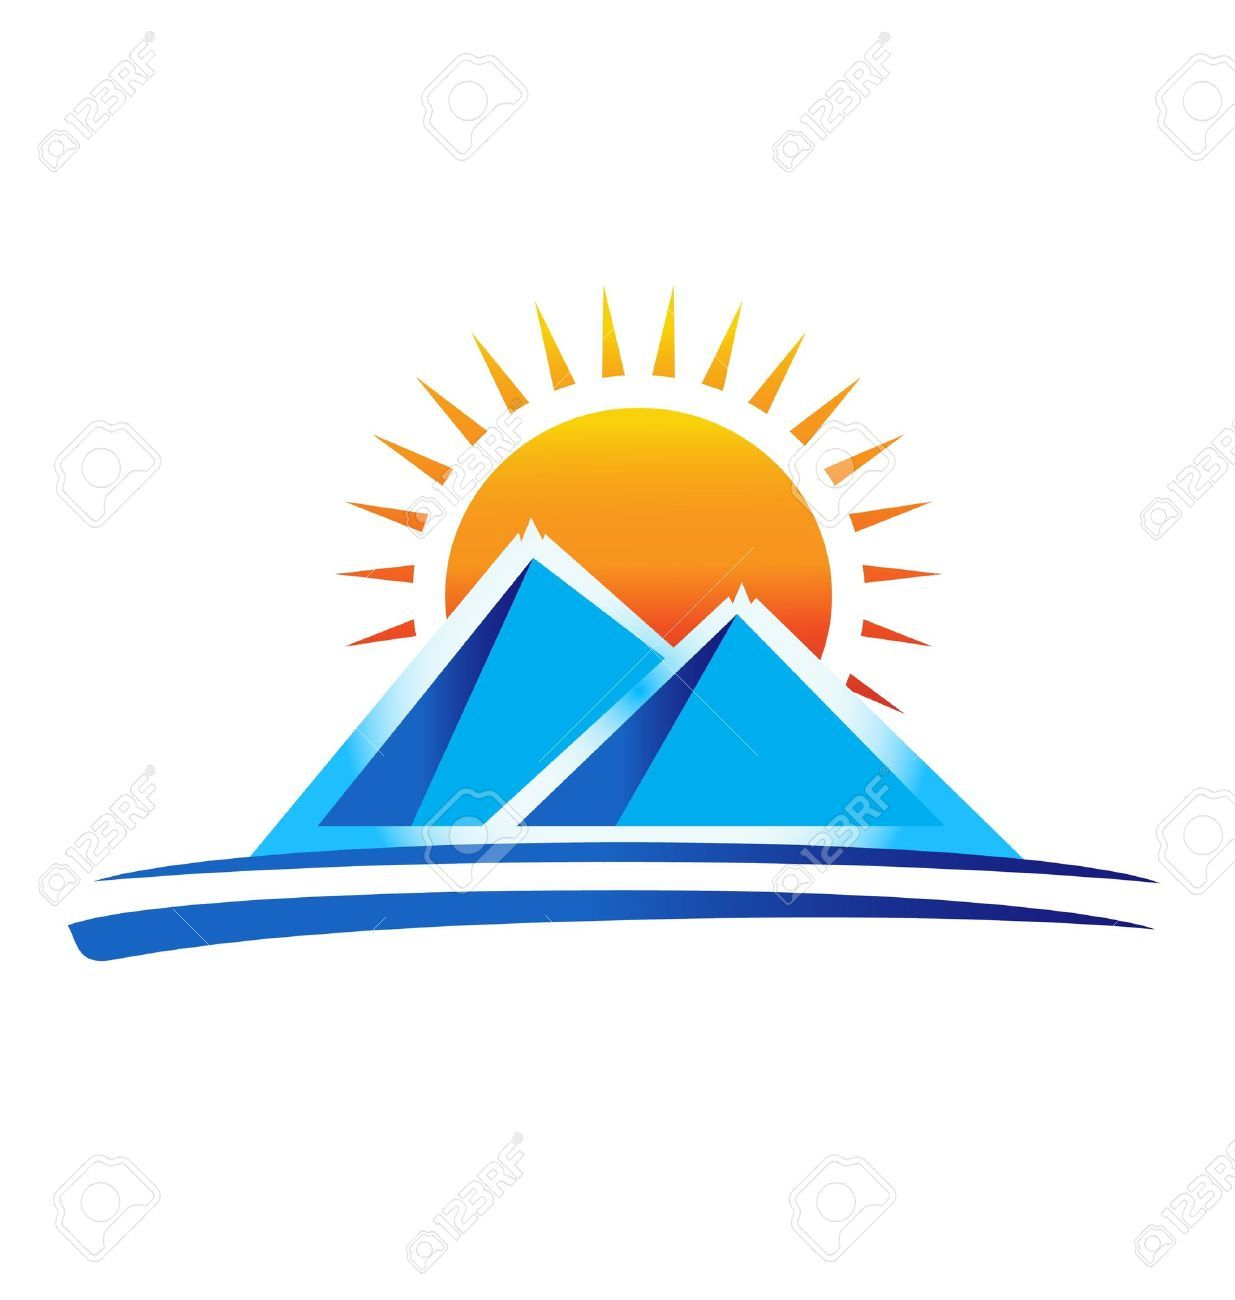 Sun over mountain clipart svg transparent download Mountain with sun clipart » Clipart Portal svg transparent download